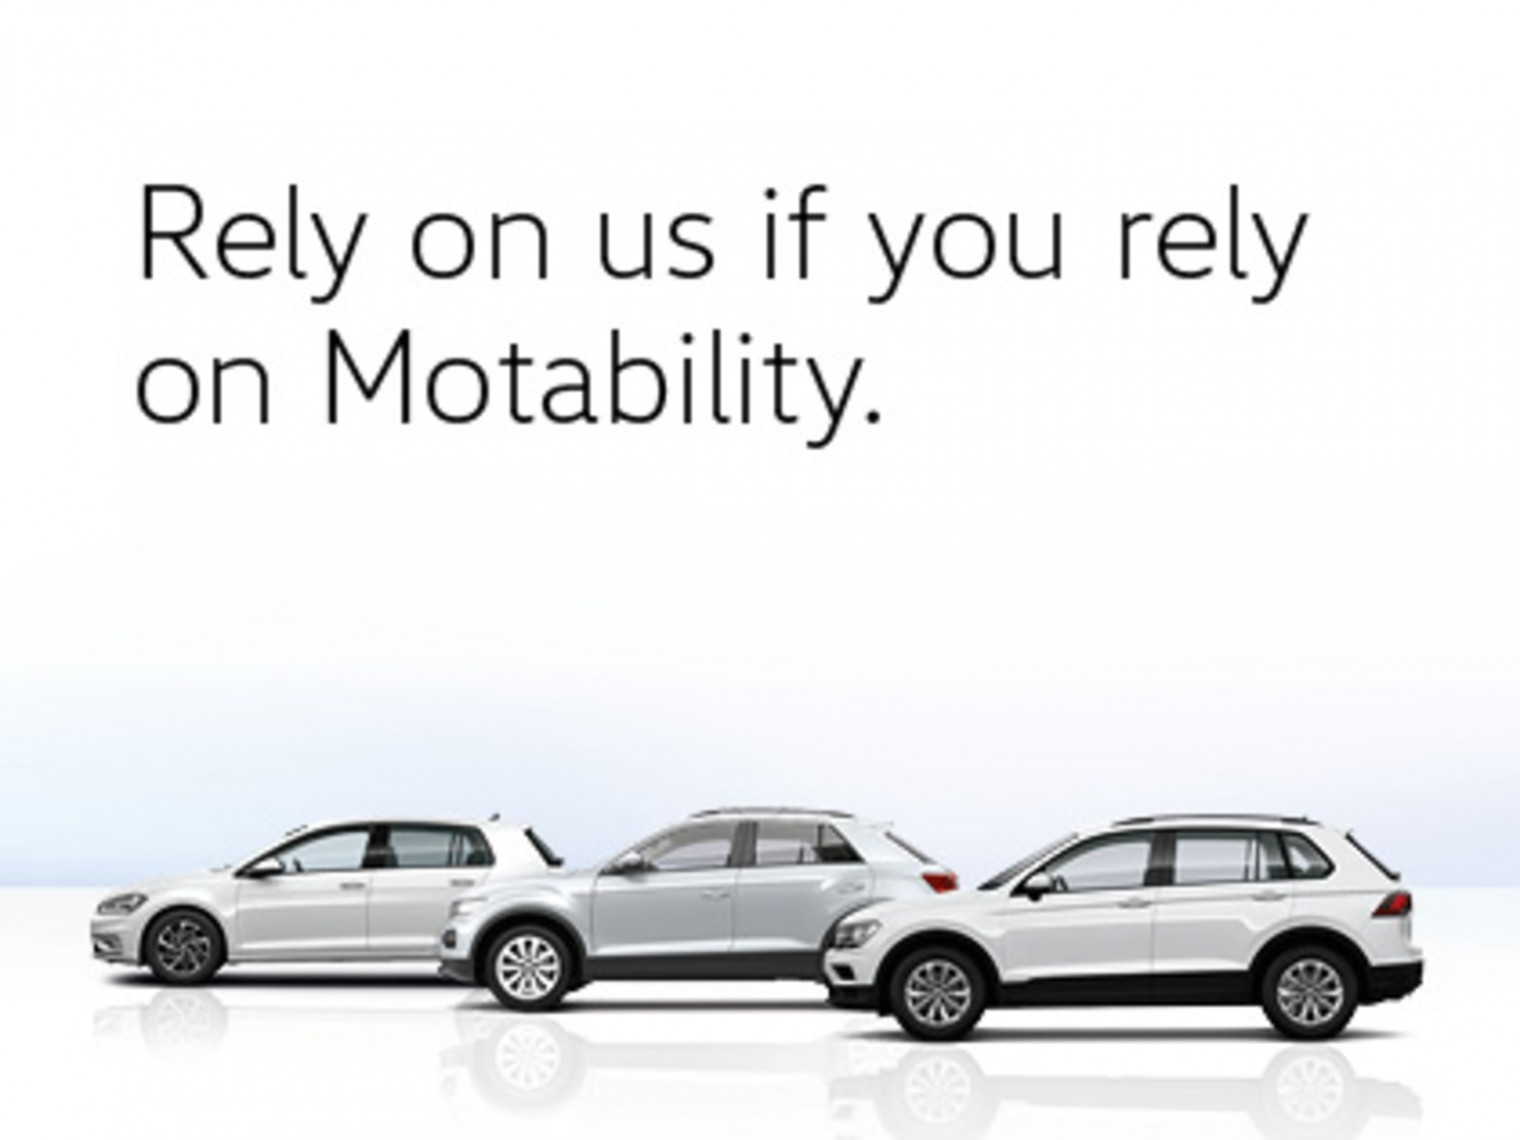 View our Motability Price List